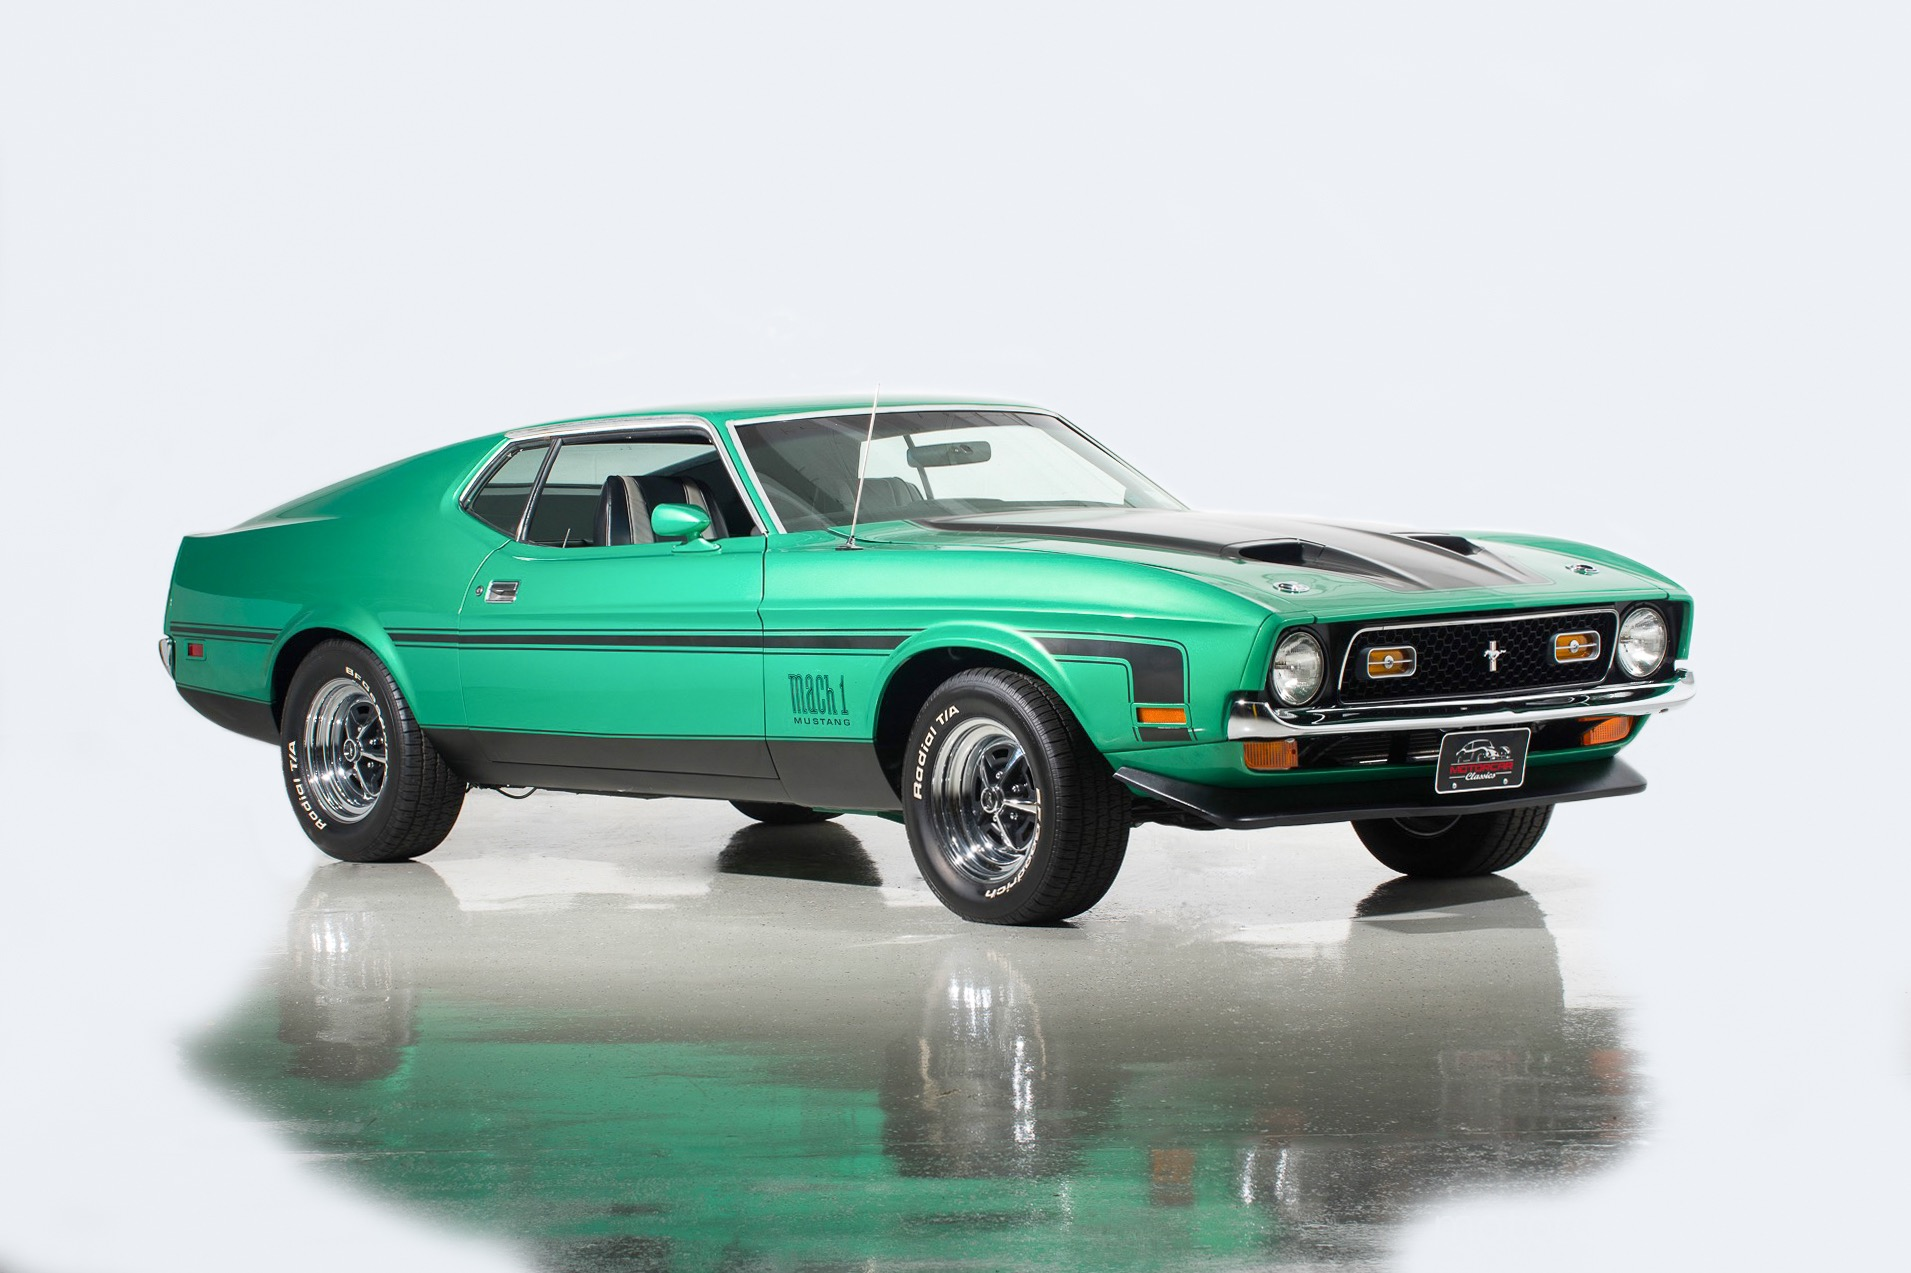 1971 Ford Mustang Mach 1 Motorcar Classics Exotic And Classic For Sale Car Dealership Farmingdale Ny